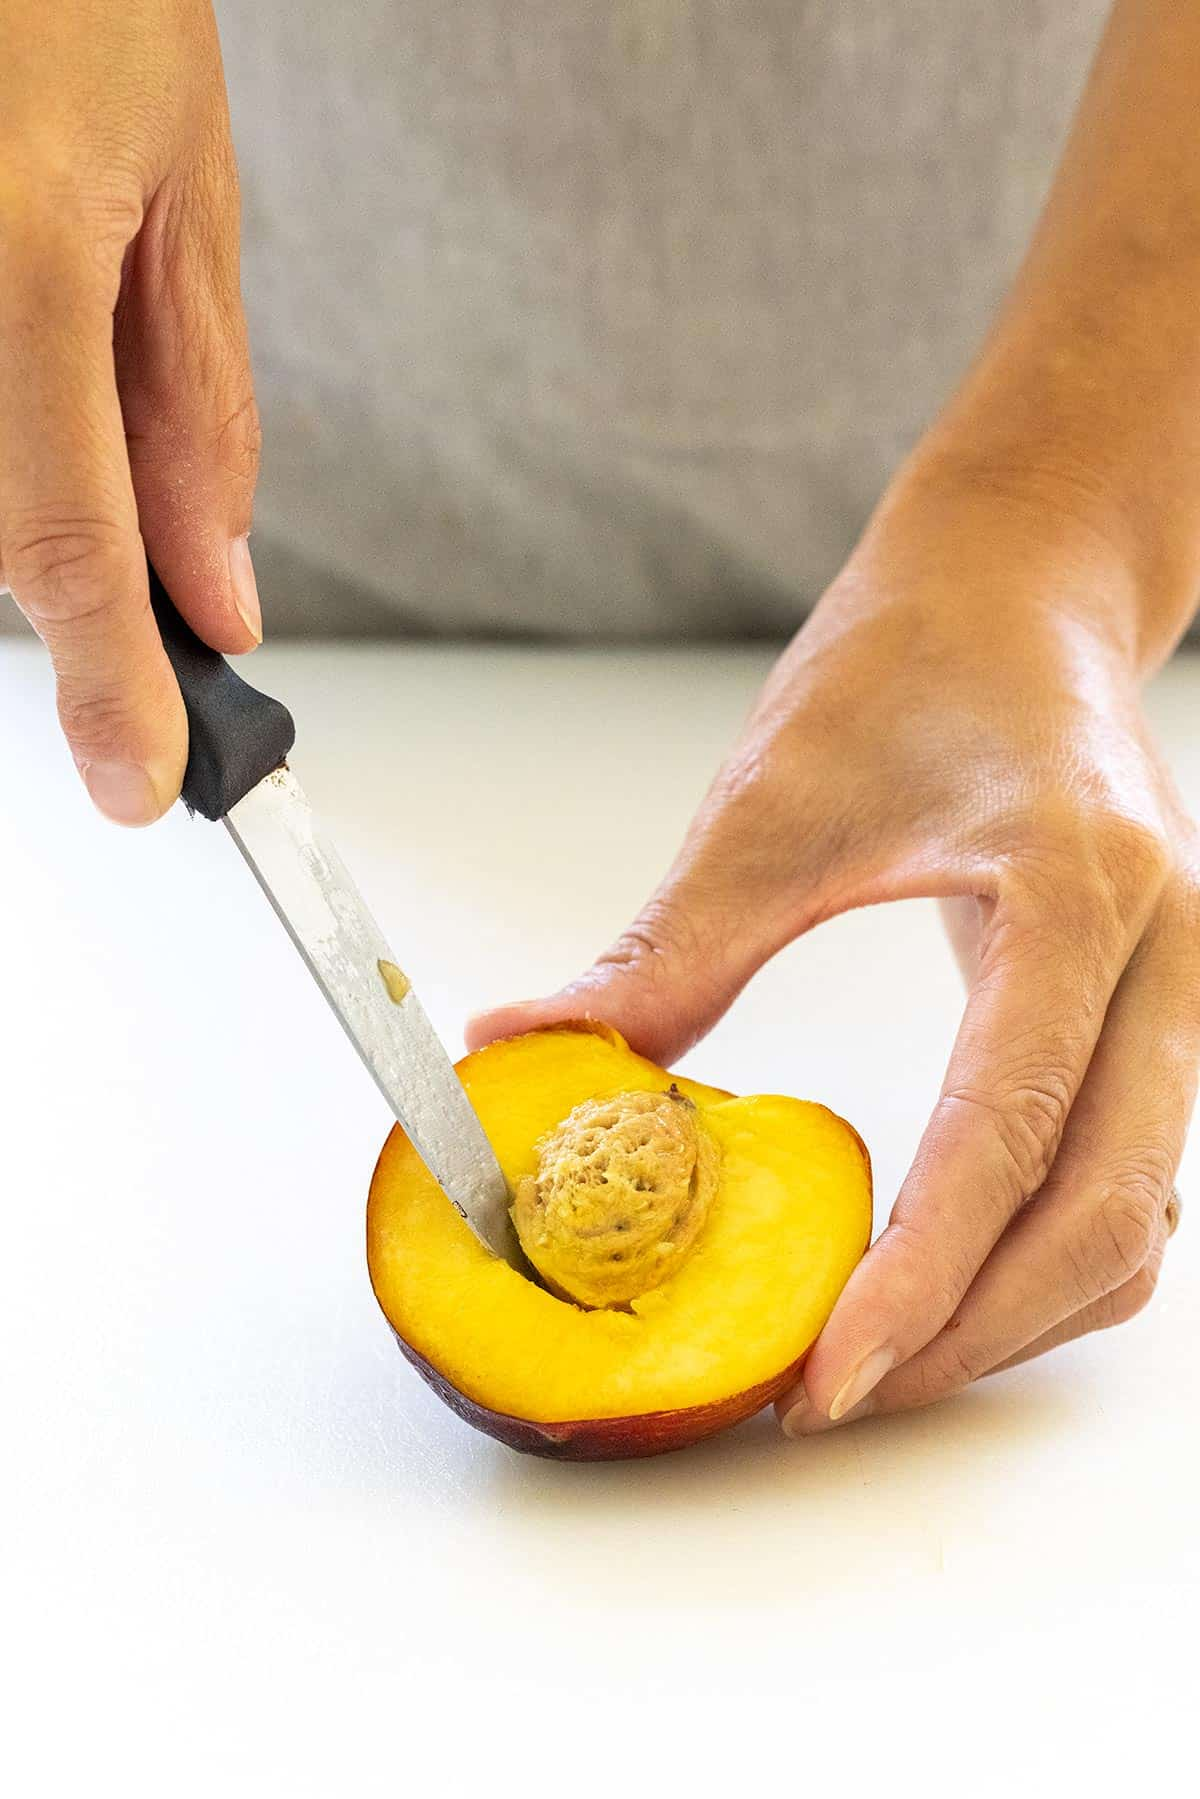 cutting a peach pit out with a knife